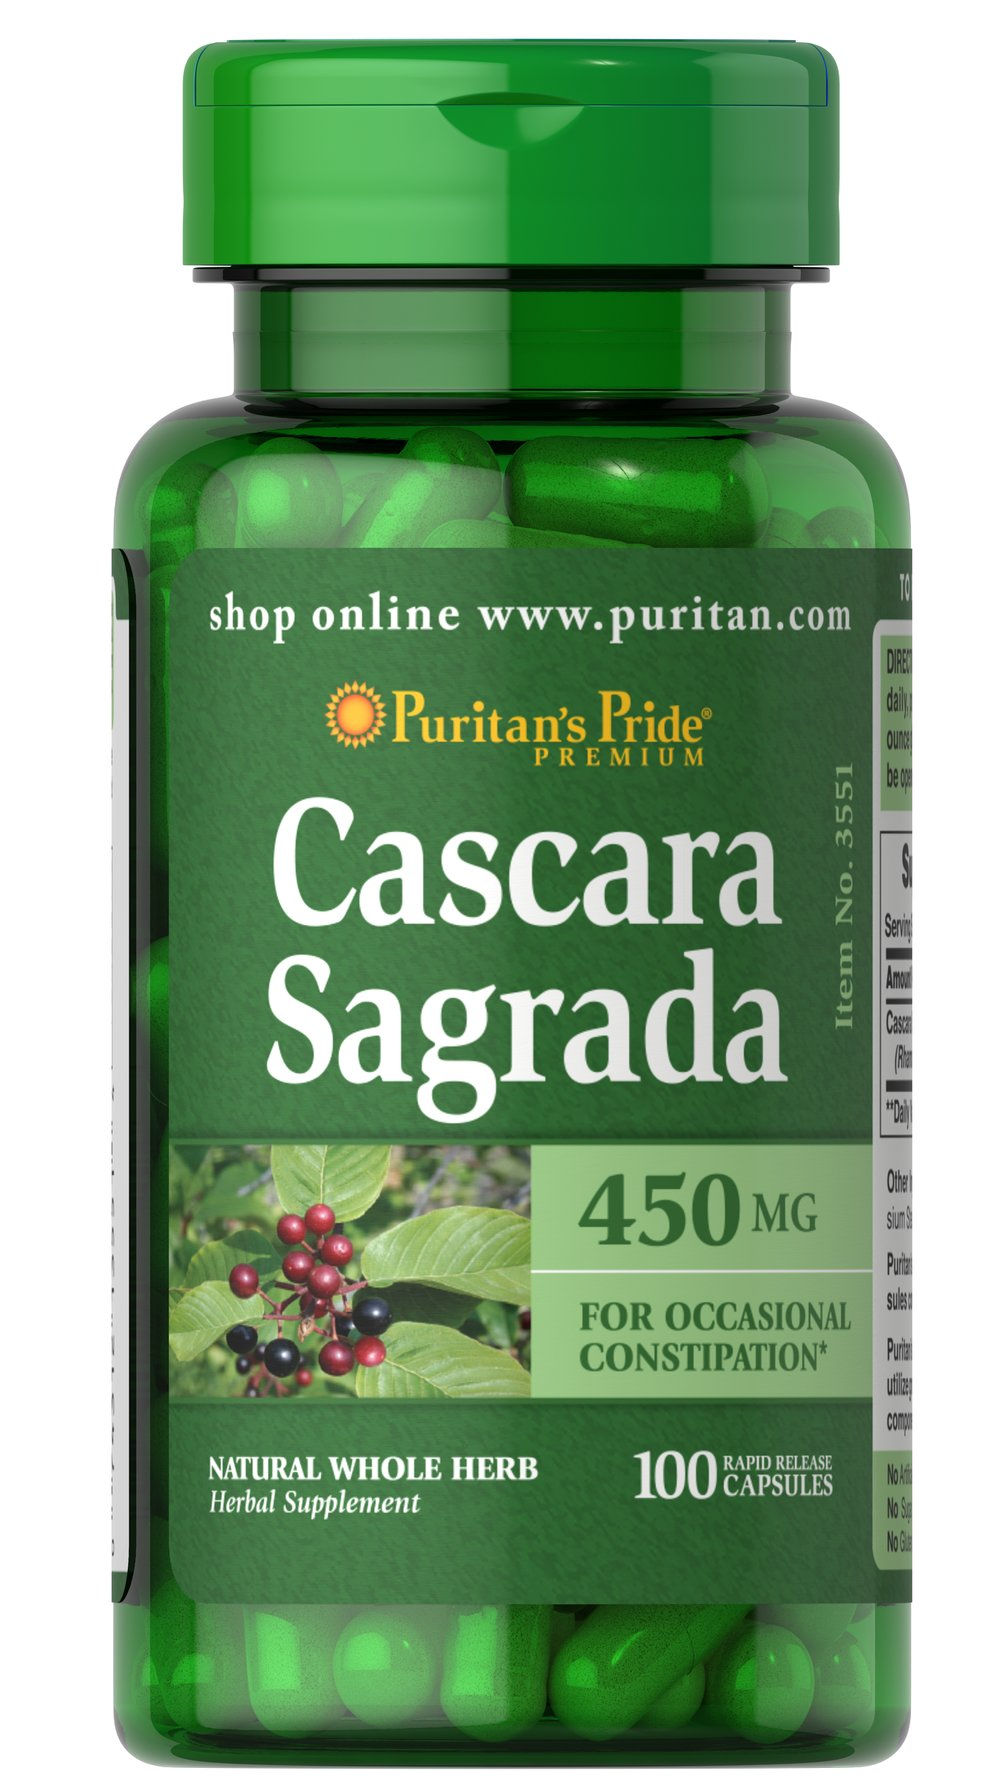 Cascara Sagrada 450 mg  100 Capsules 450 mg $7.99